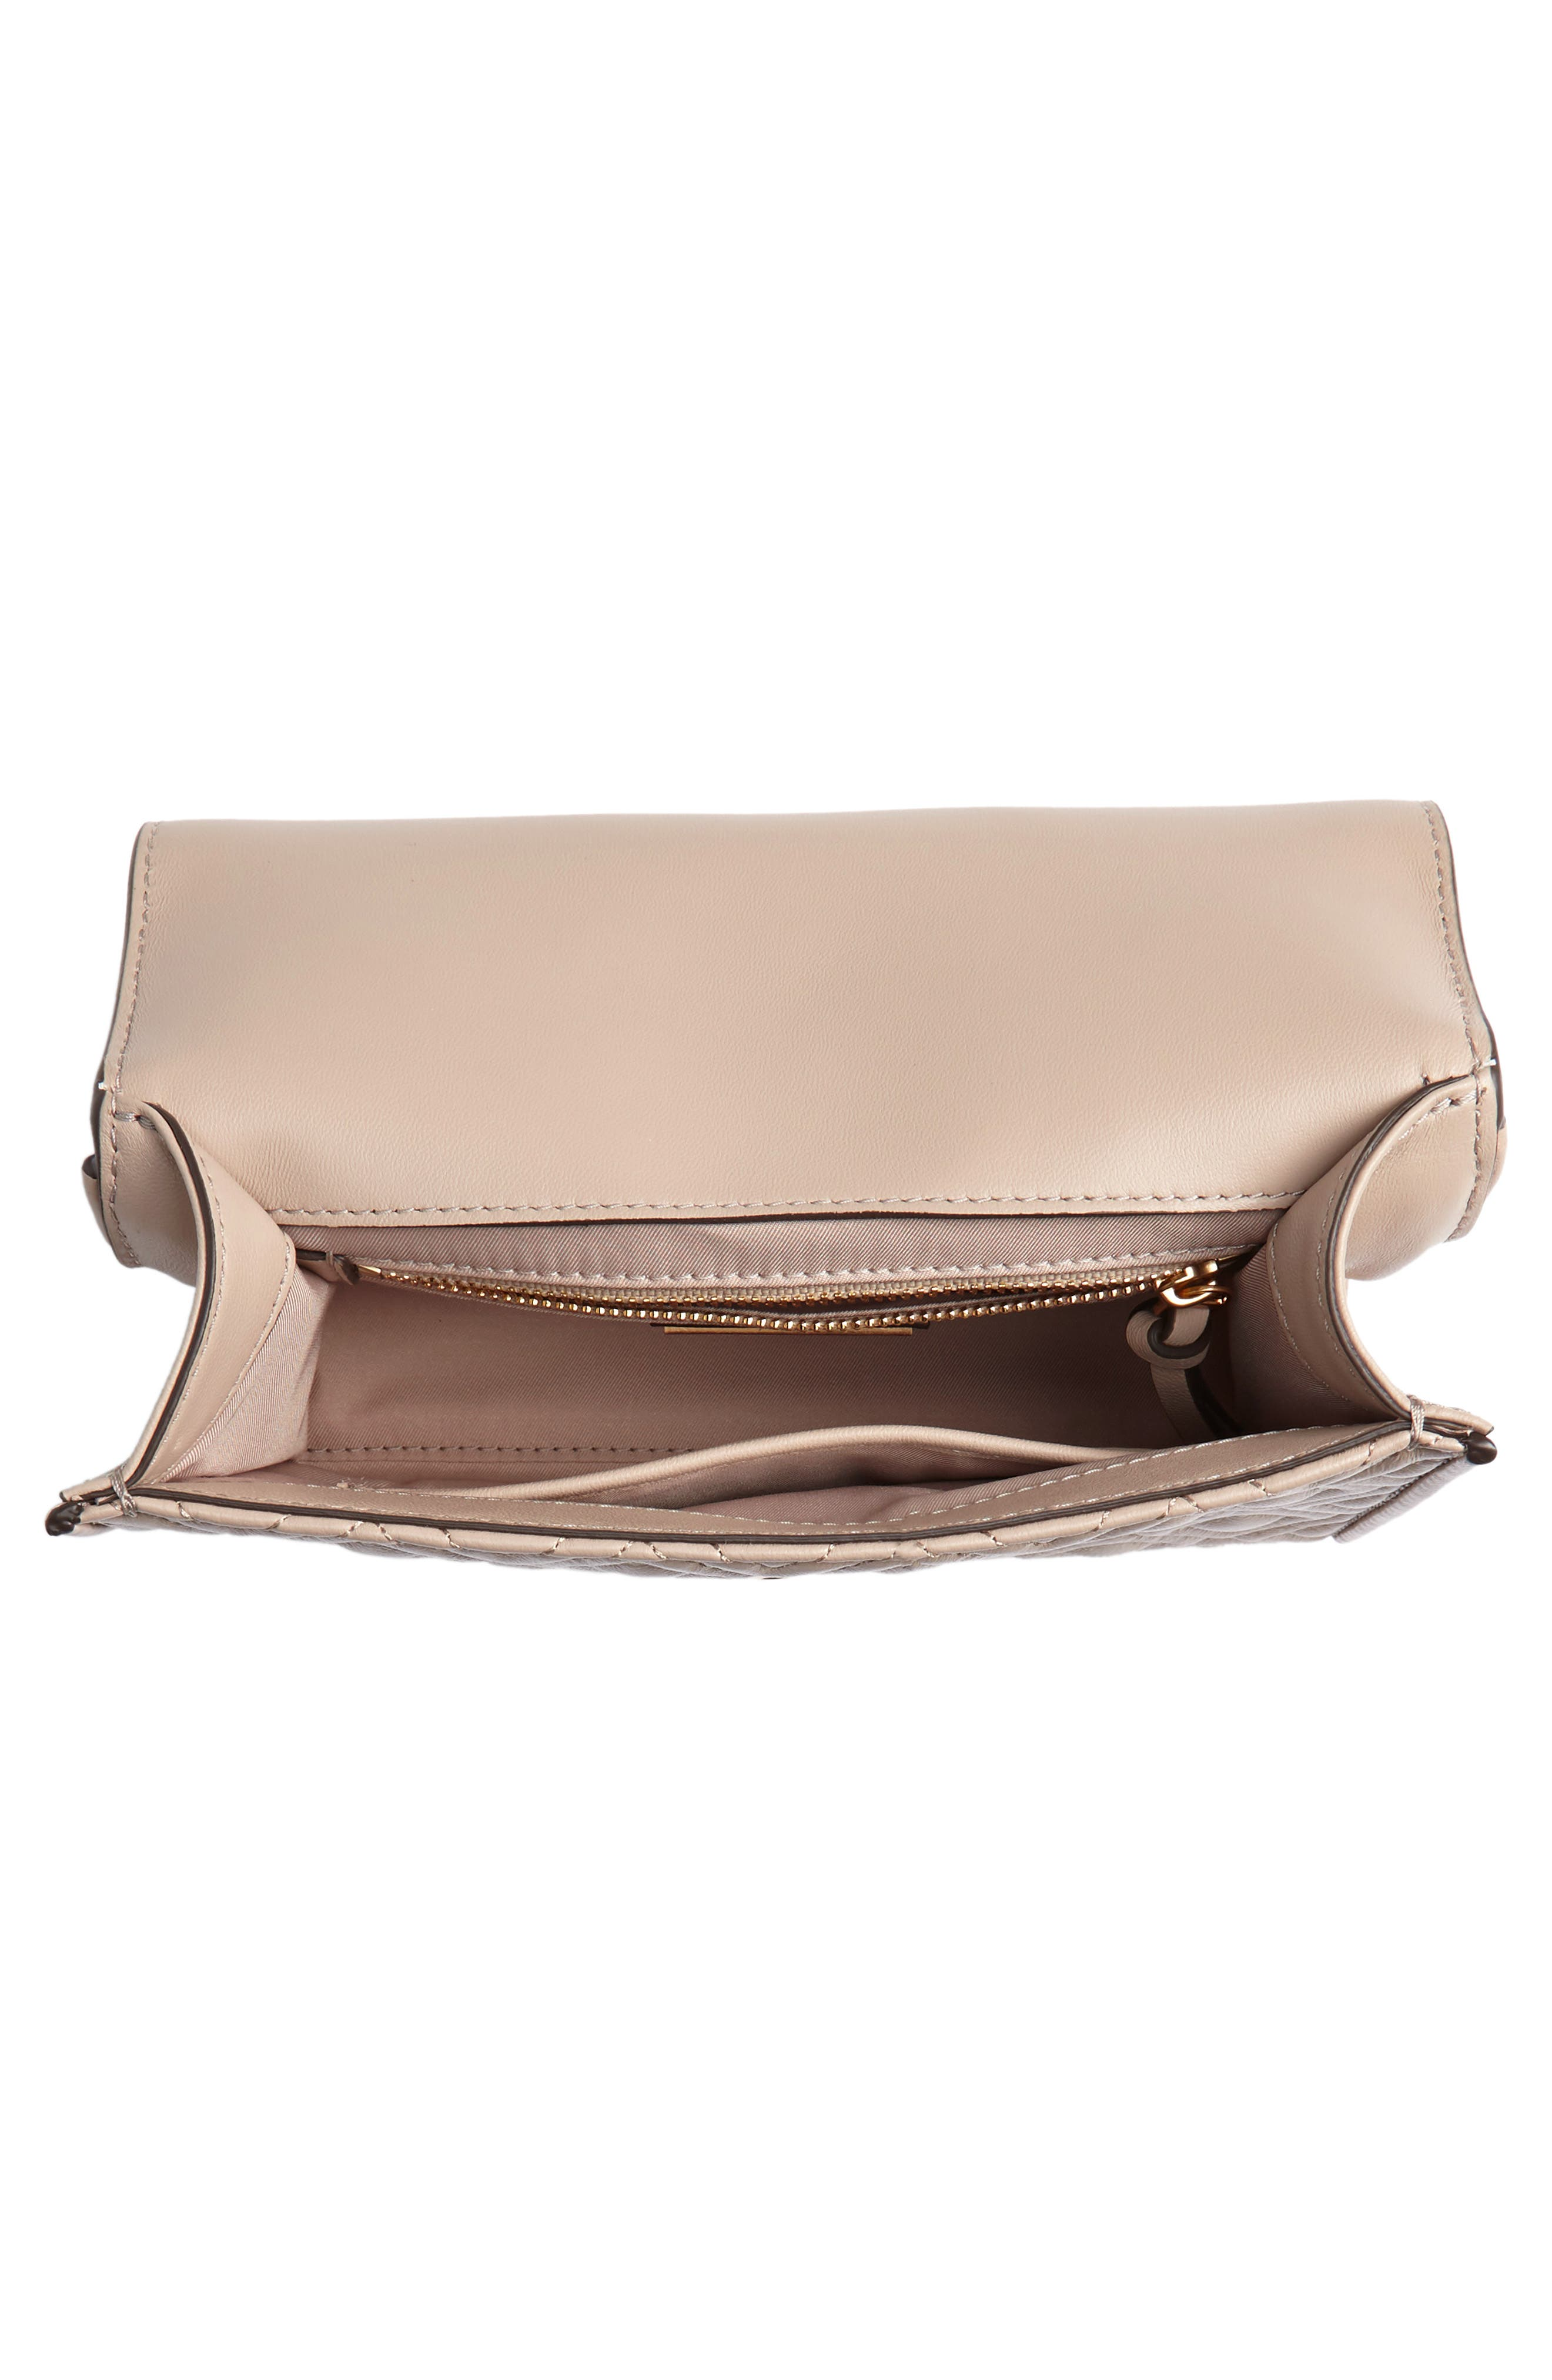 TORY BURCH, Small Fleming Leather Convertible Shoulder Bag, Alternate thumbnail 5, color, LIGHT TAUPE